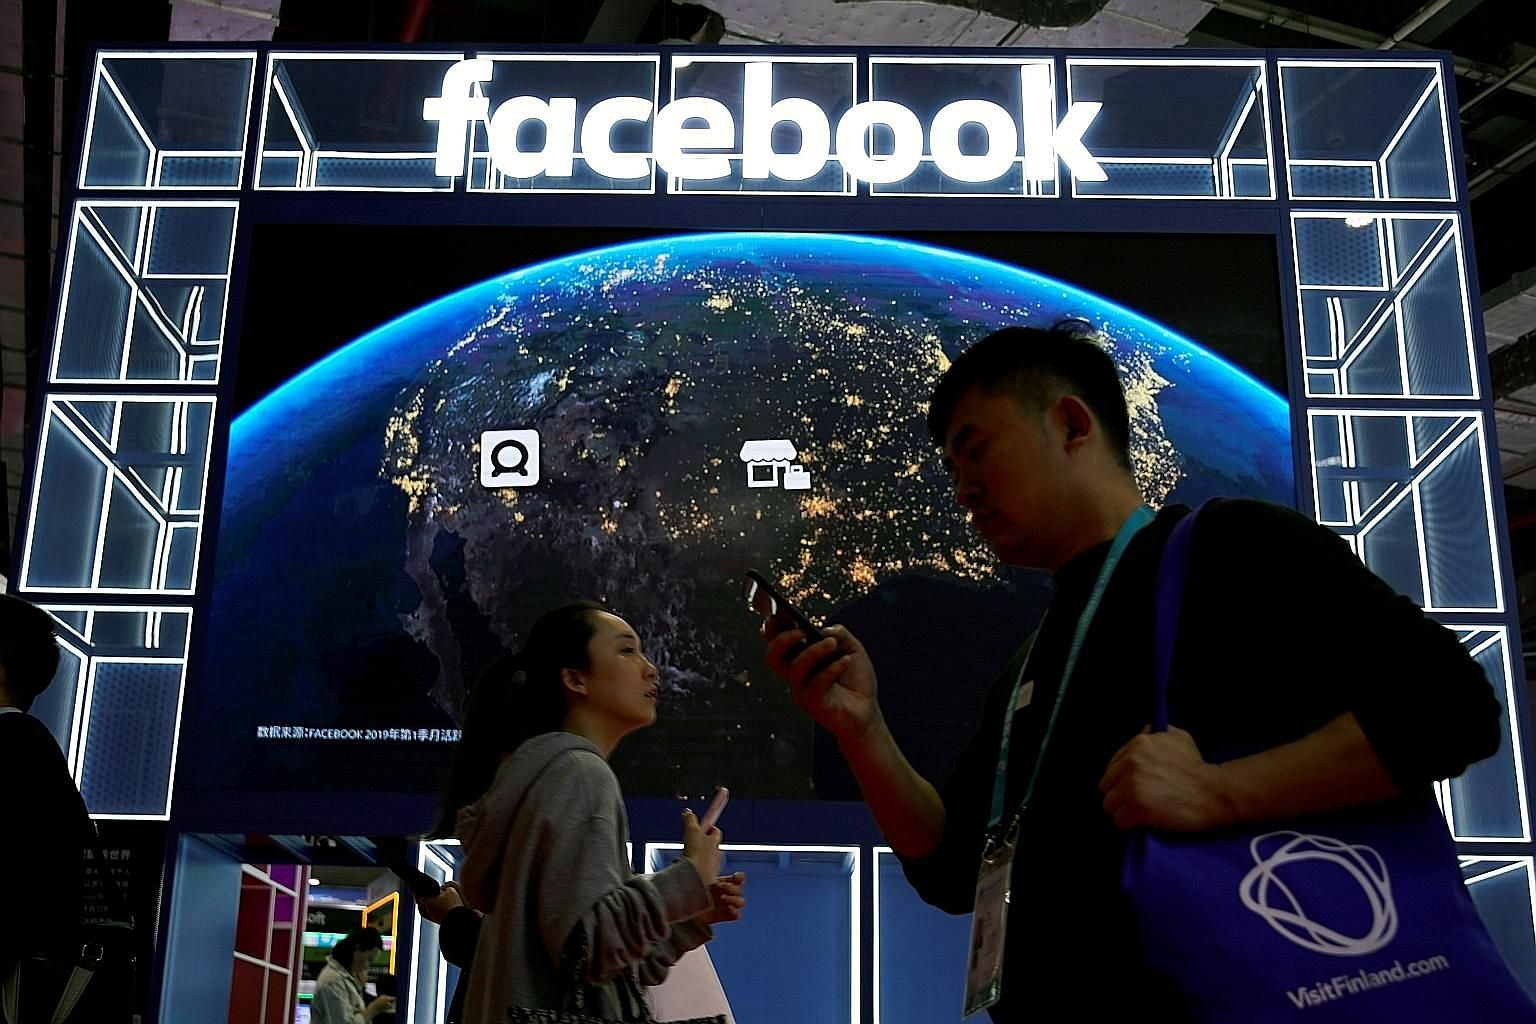 Facebook sells over US$5 billion (S$6.8 billion) worth of ad space a year to Chinese businesses and government agencies looking to promote their messages abroad, analysts estimate. This is even as China blocks the social network, while Chinese custom